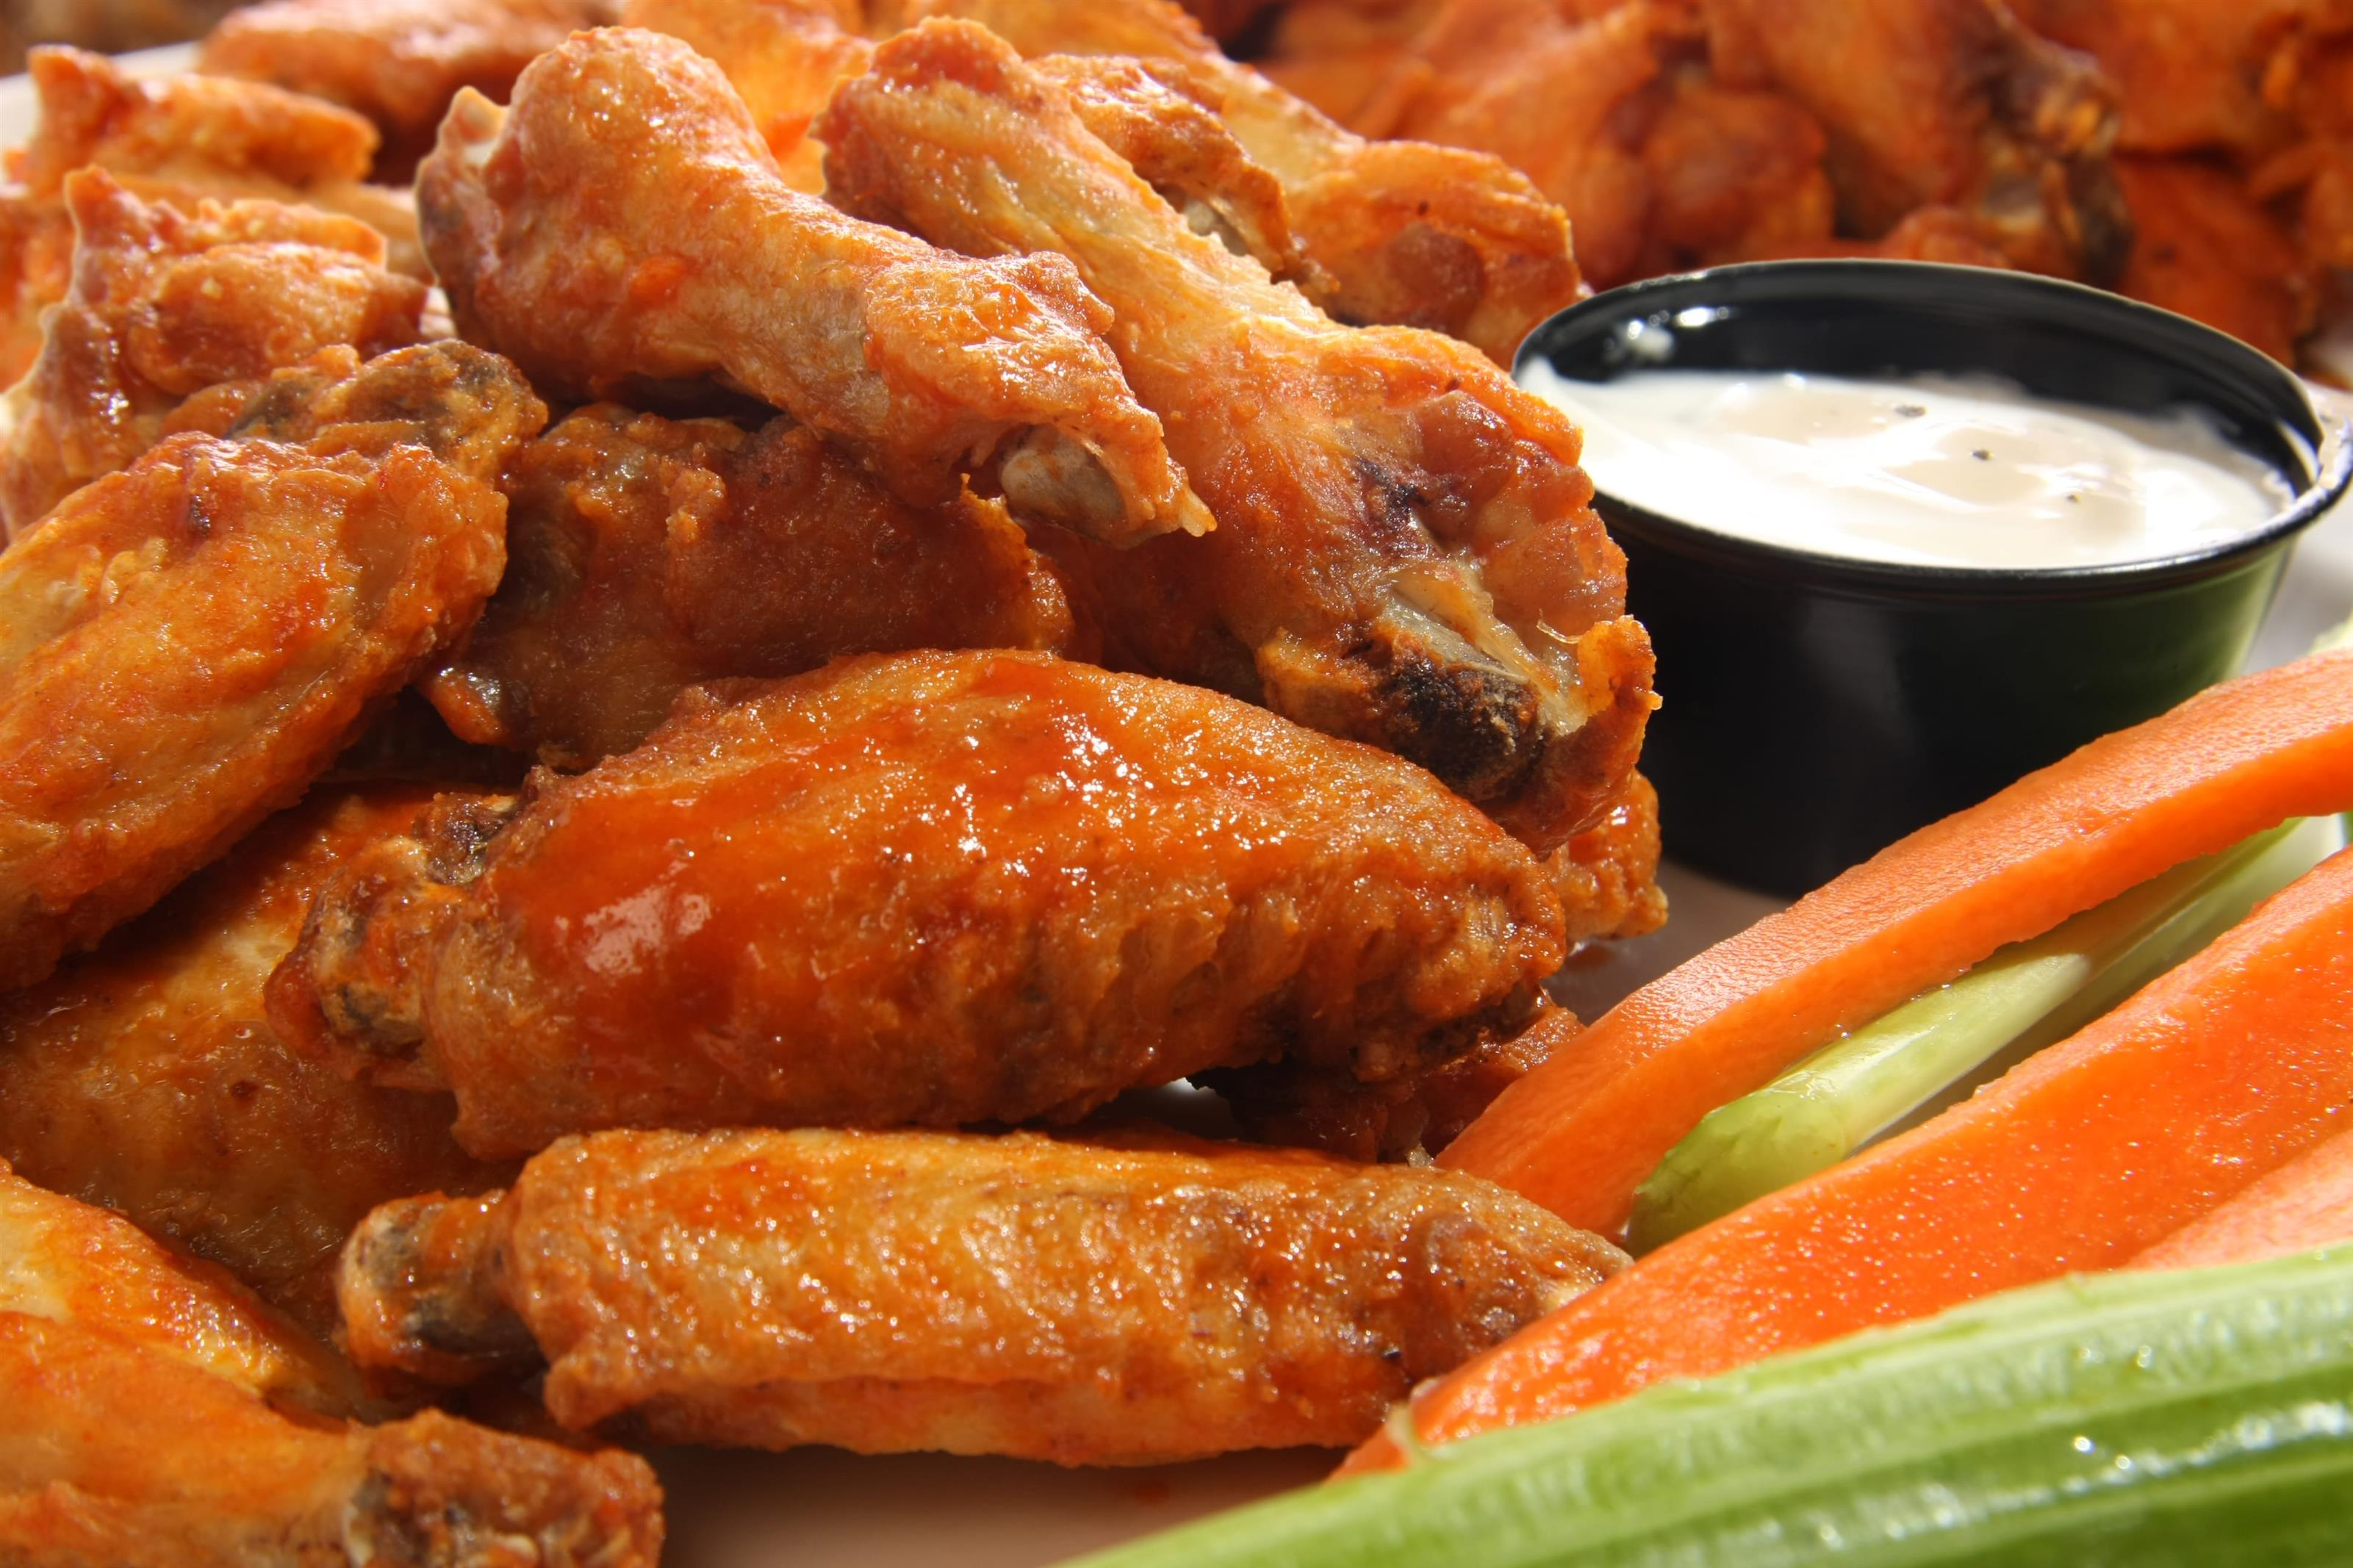 Buffalo wings with side of ranch, celery, carrots